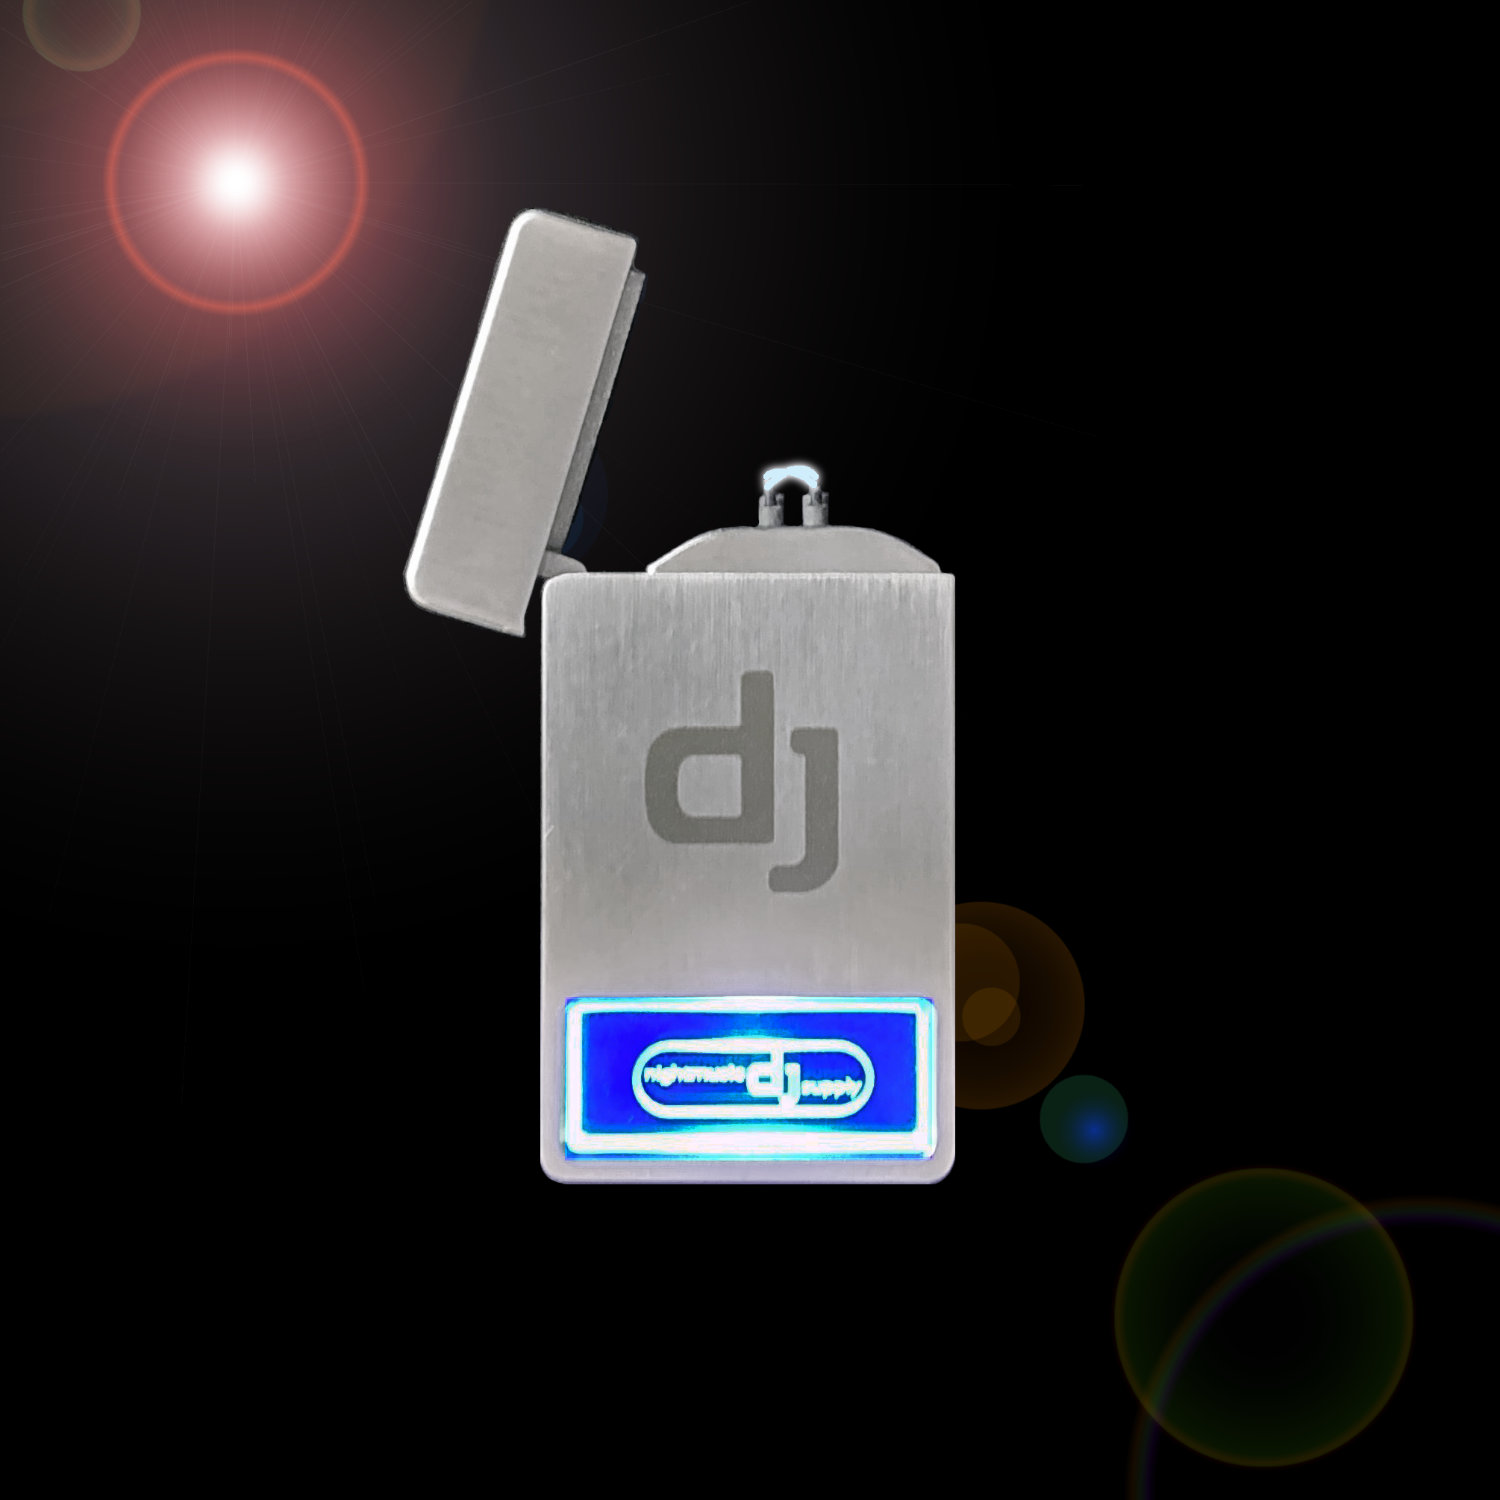 dj-lighter 07